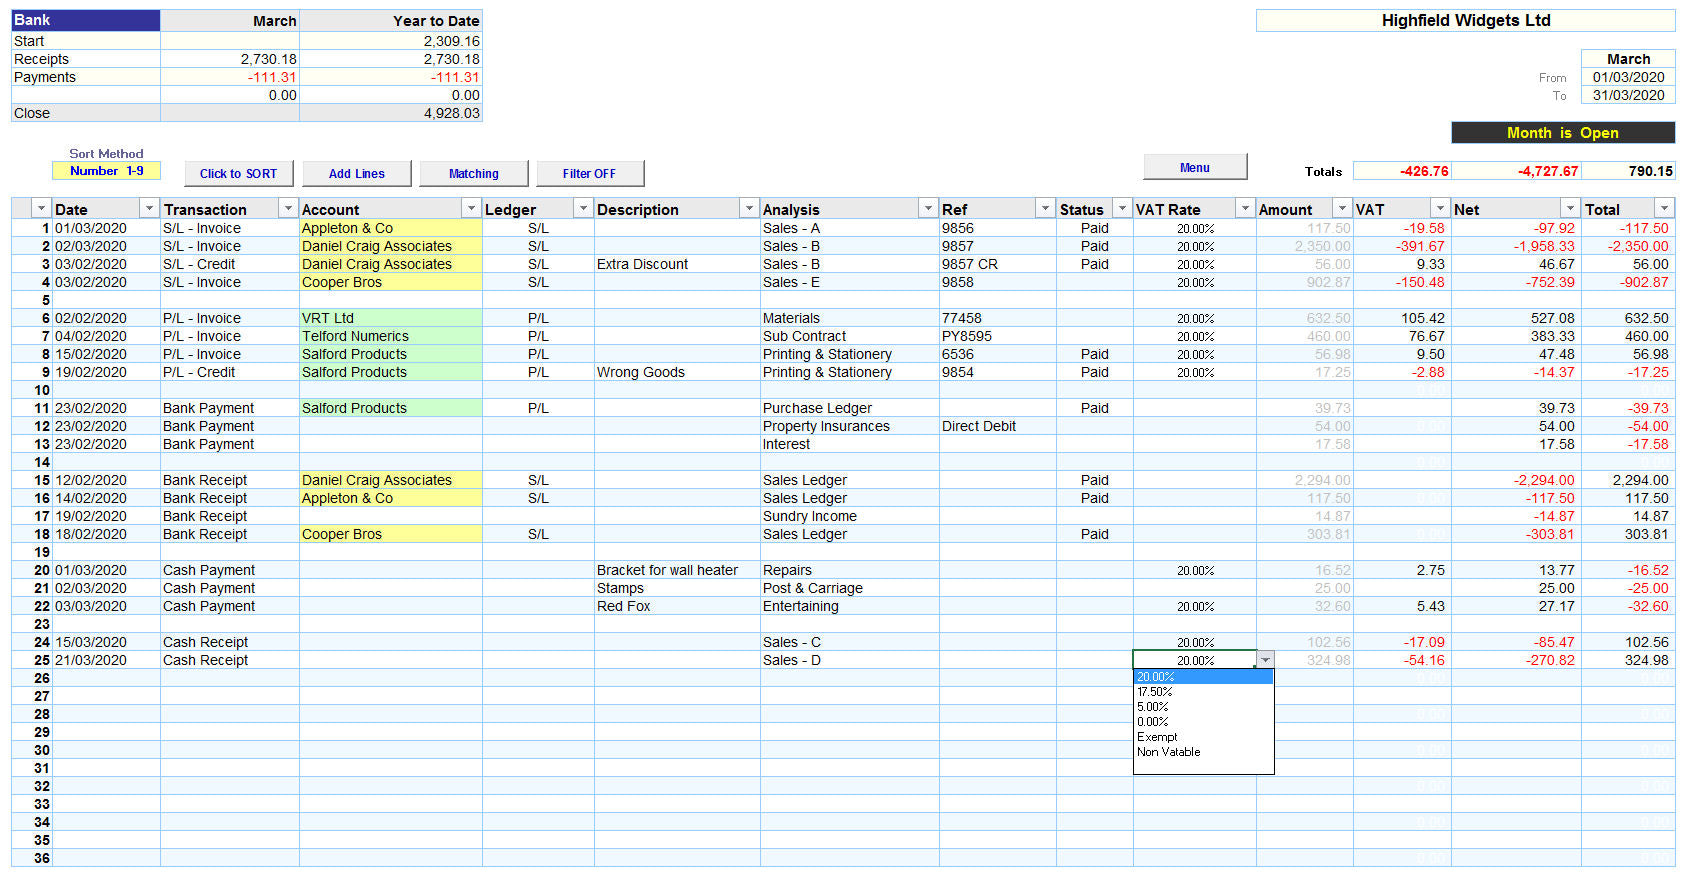 Excel Accounting Spreadsheet Template with VAT